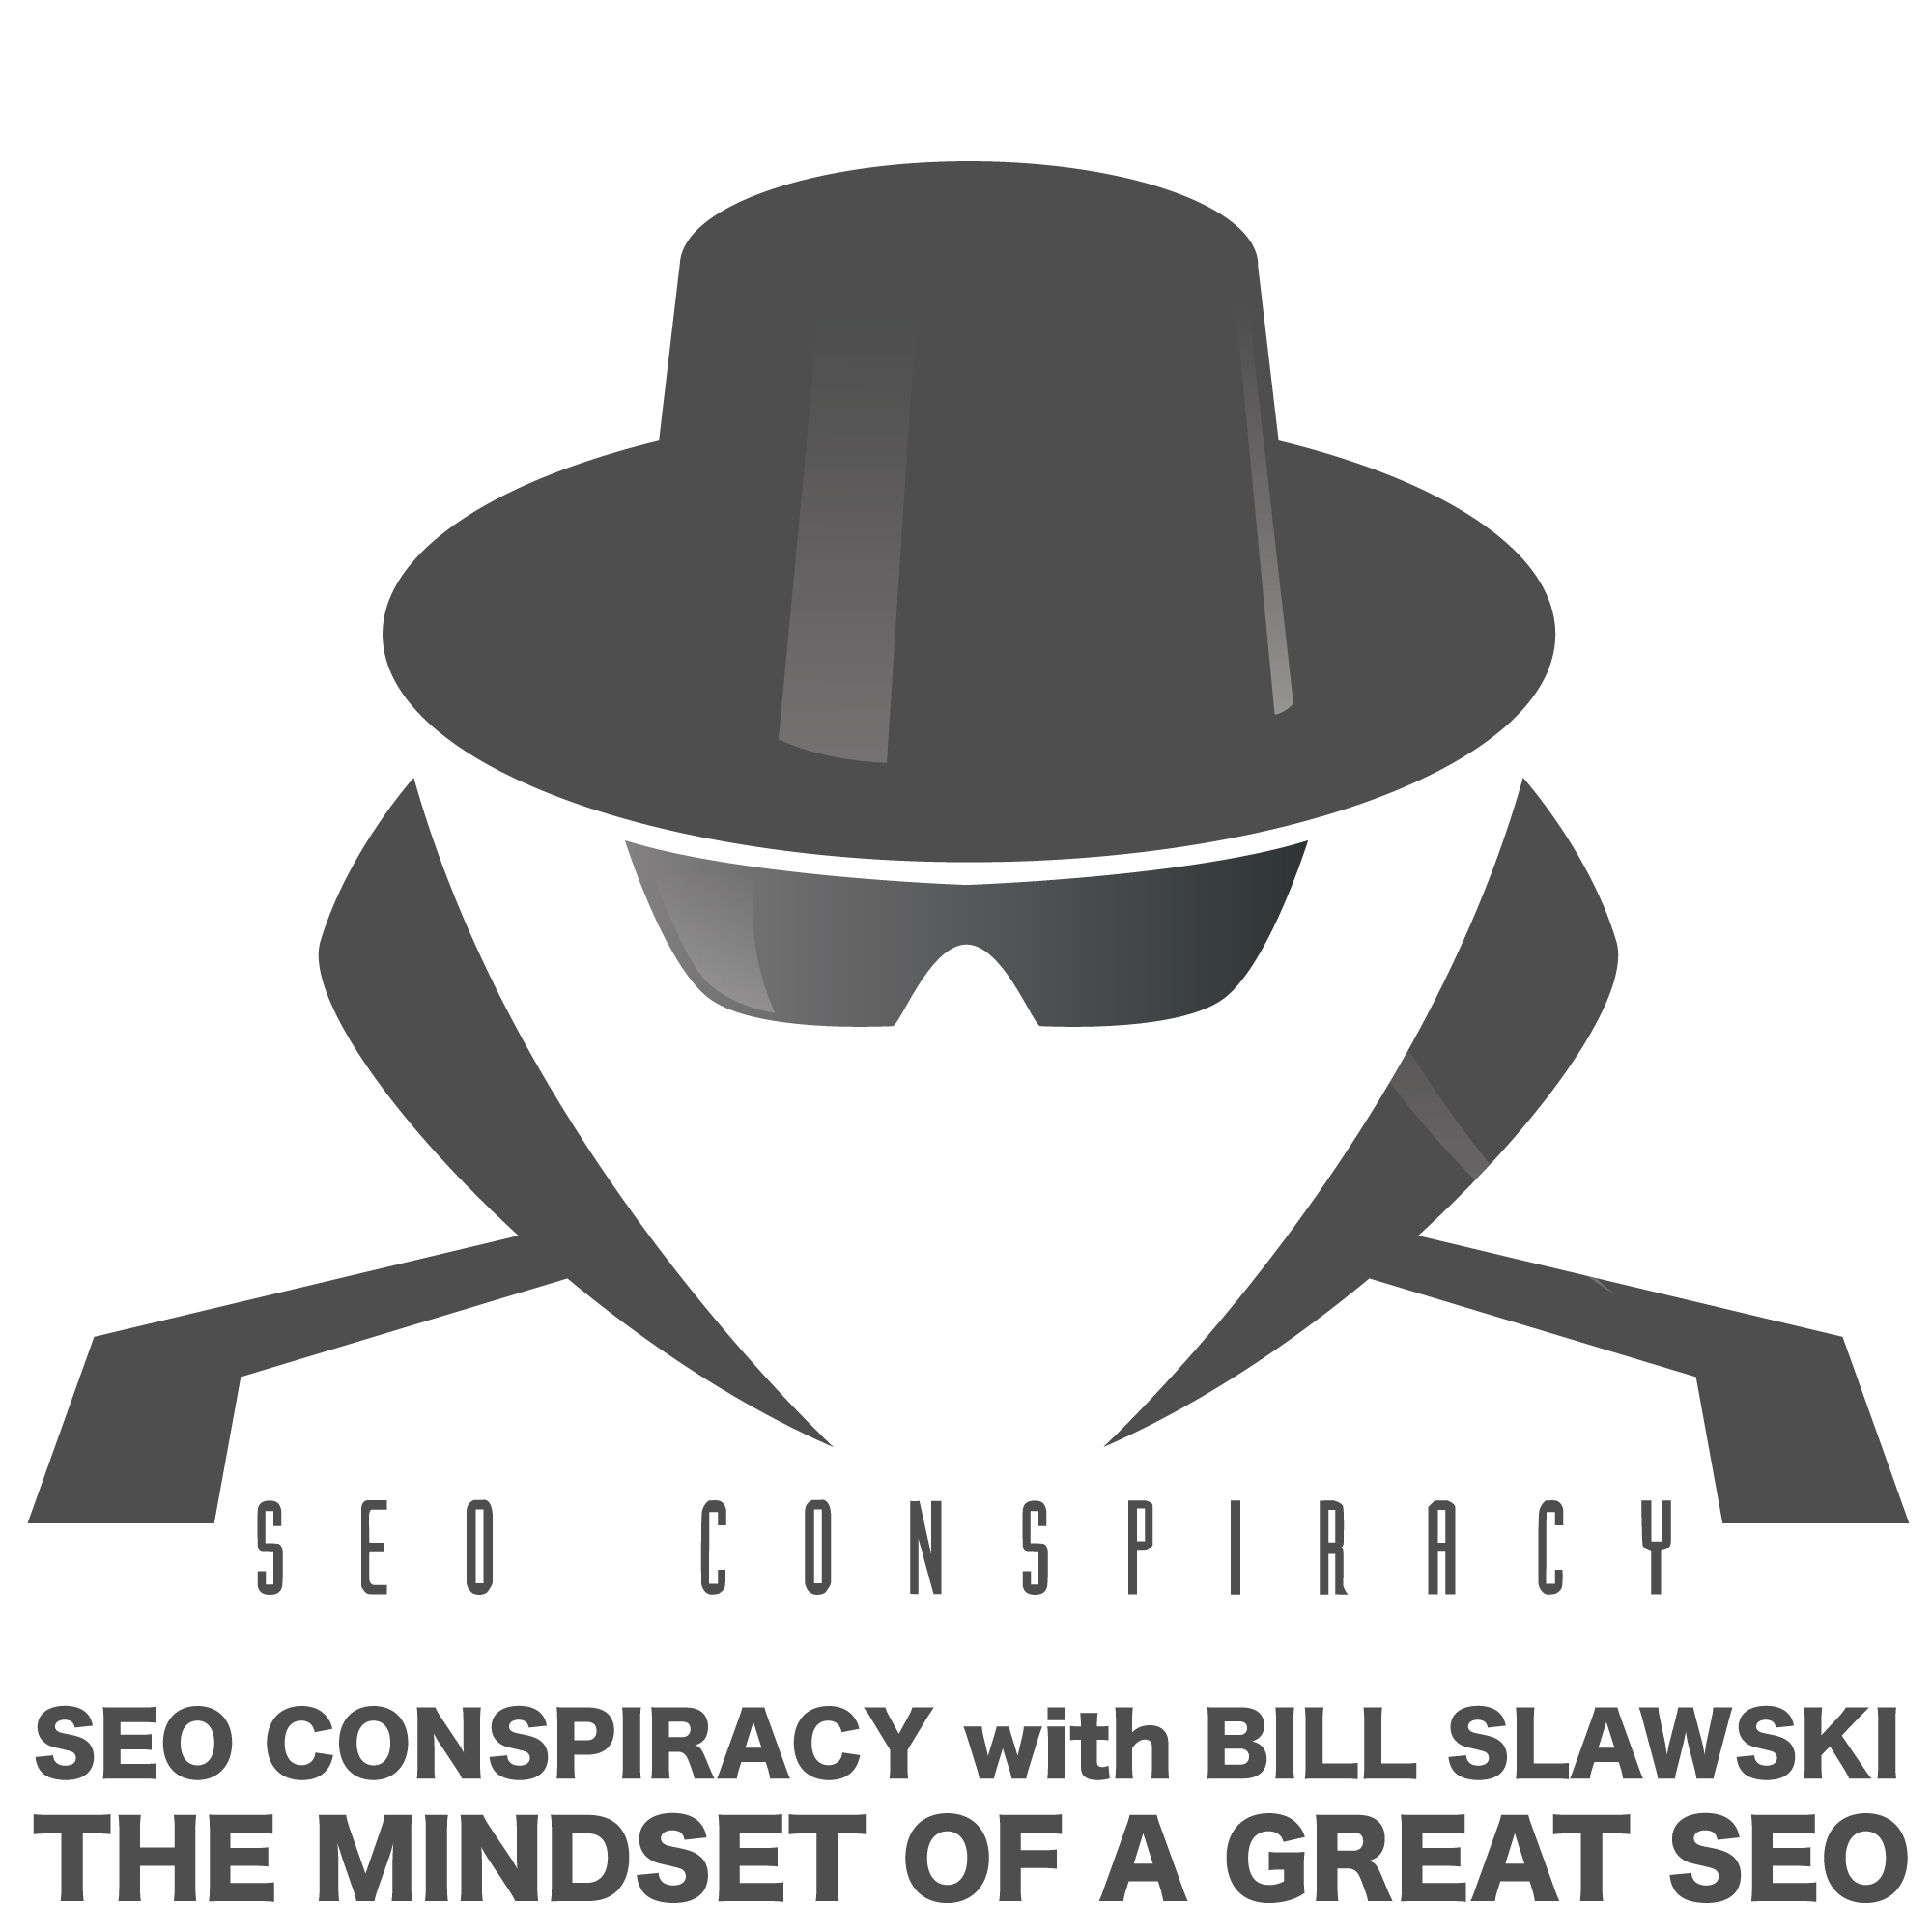 The Mindset of a Great SEO with Bill Slawski from SEO by the Sea